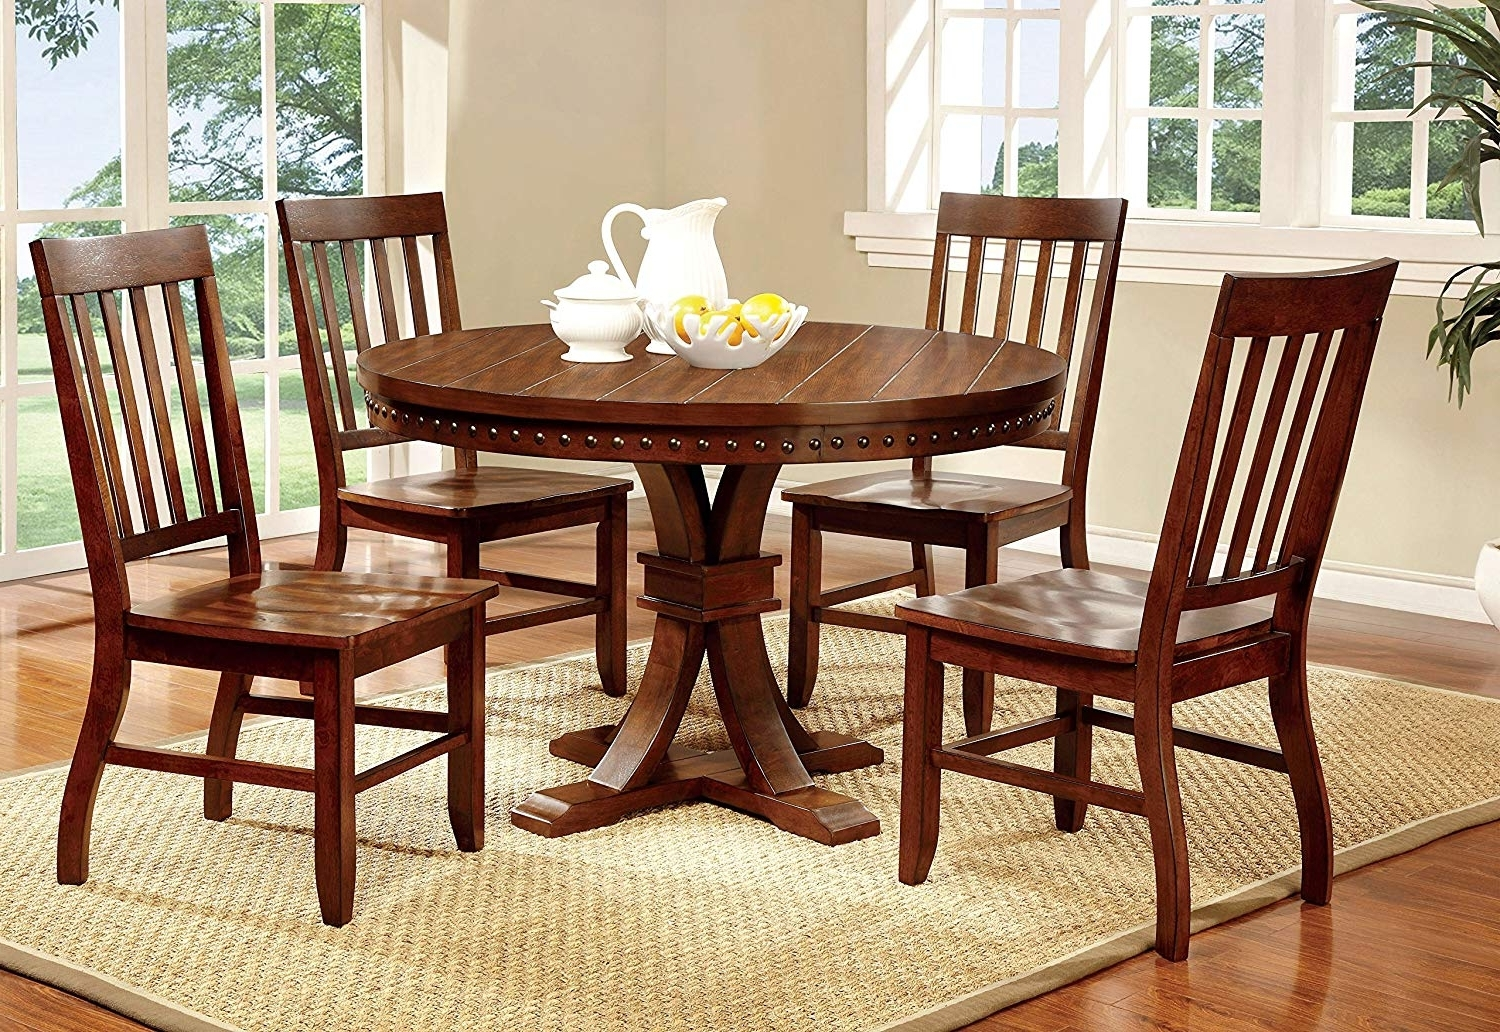 Amazon – Furniture Of America Castile 5 Piece Transitional Round With Regard To Popular Dark Round Dining Tables (View 14 of 25)